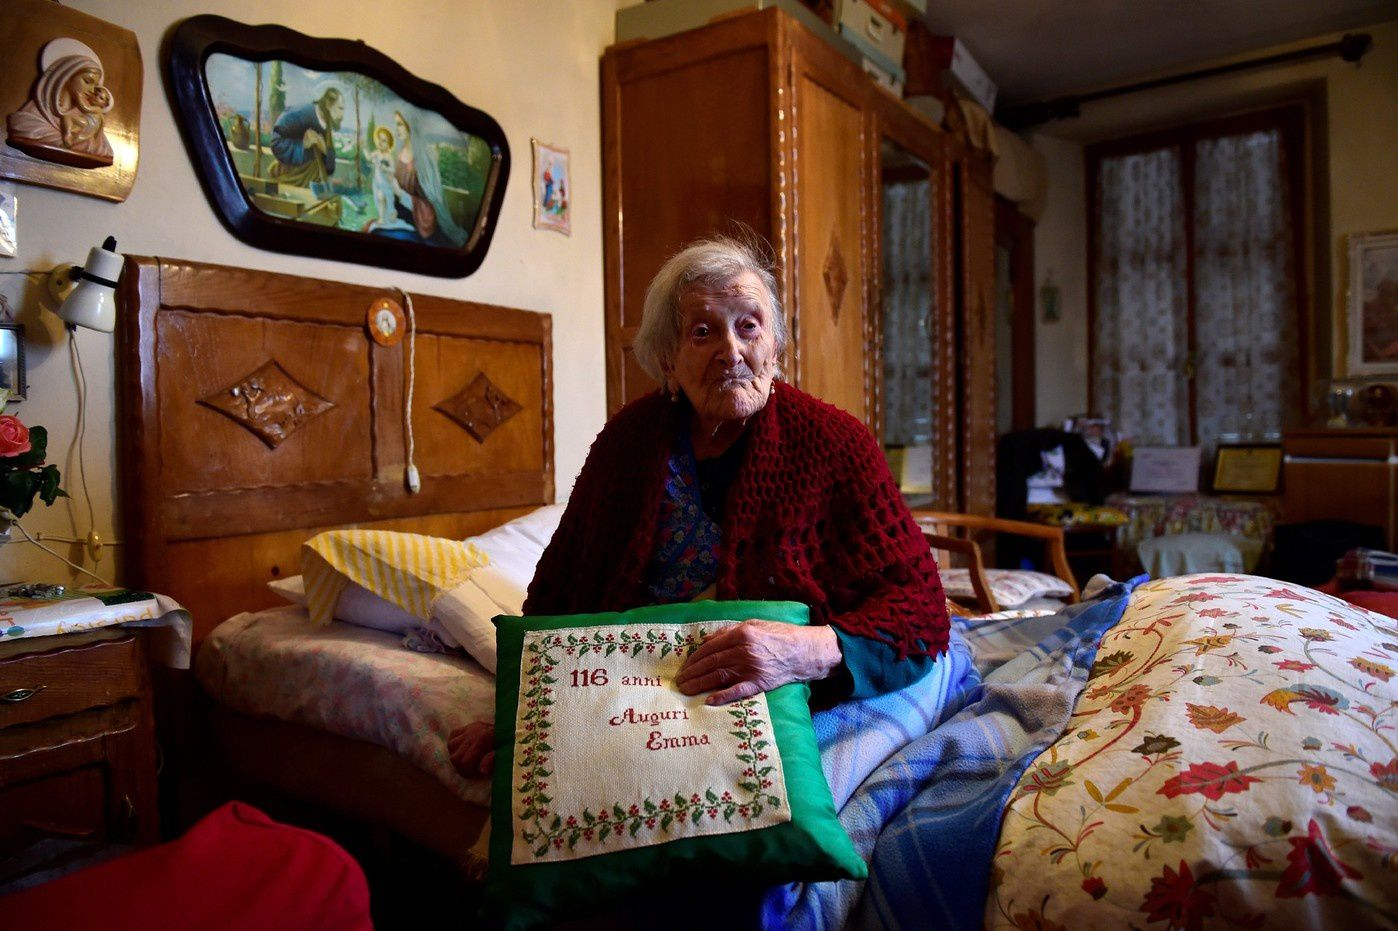 Emma Morano, 117 ans, ni alcool, ni tabac mais beaucoup de sommeil. / Olivier Morin/AFP